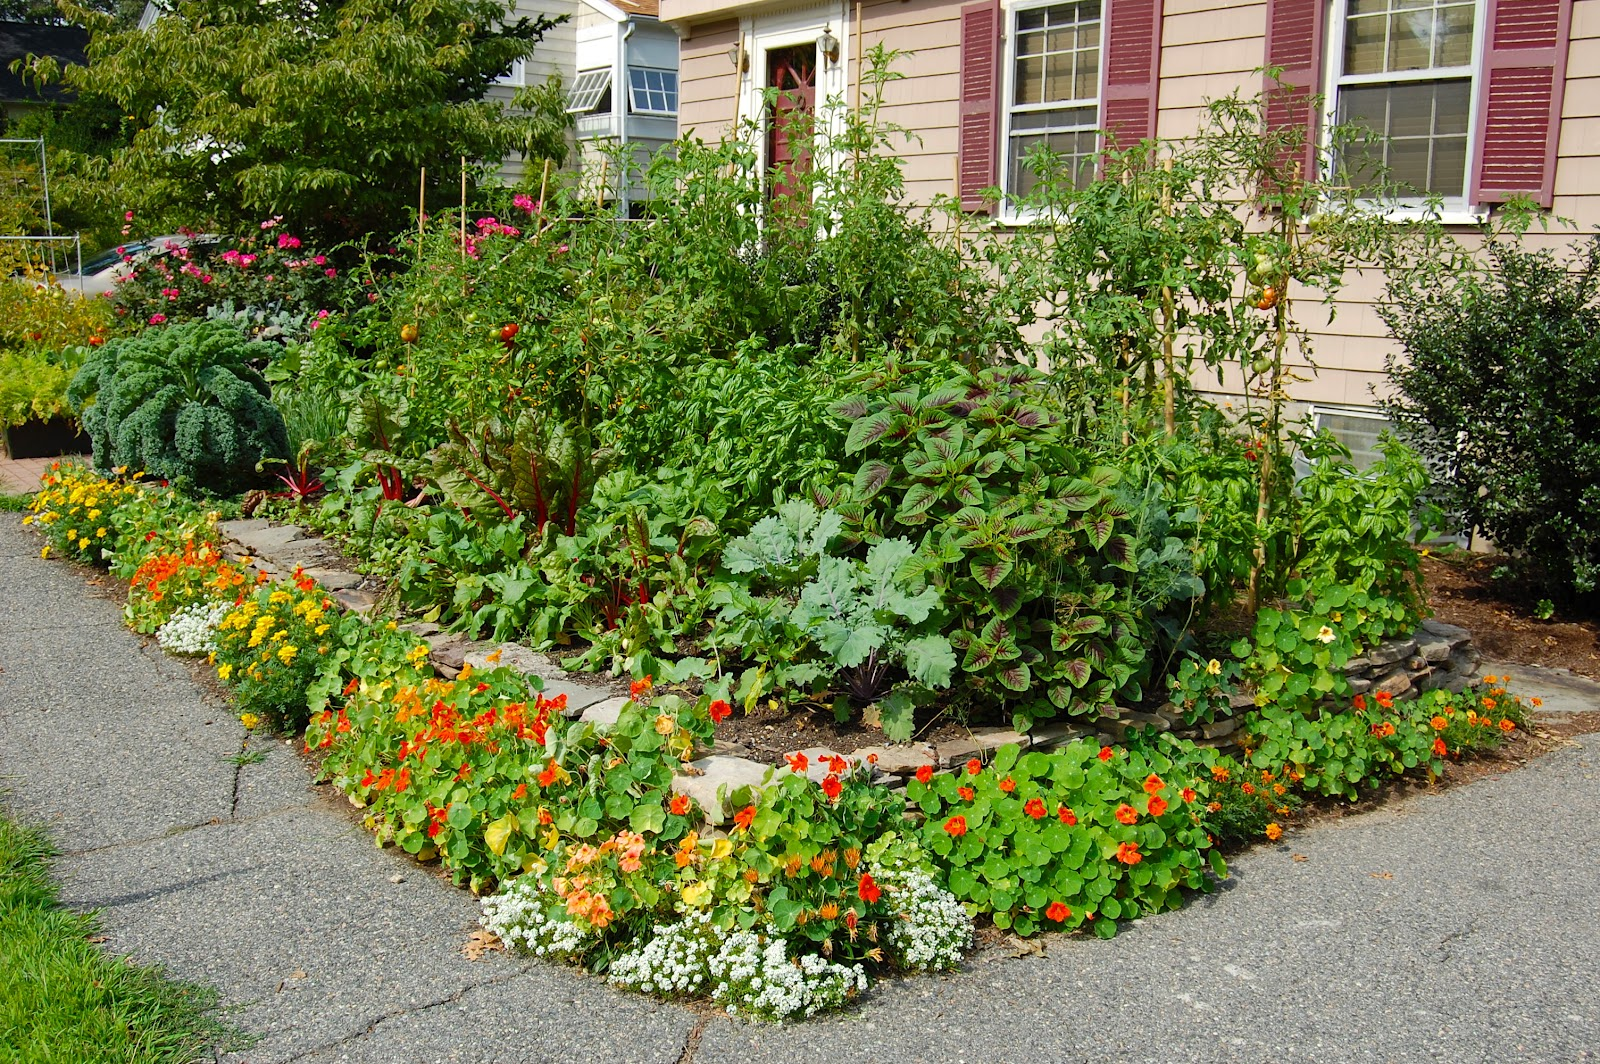 Landscaping landscaping ideas for front yard edible gardens for Front lawn garden design